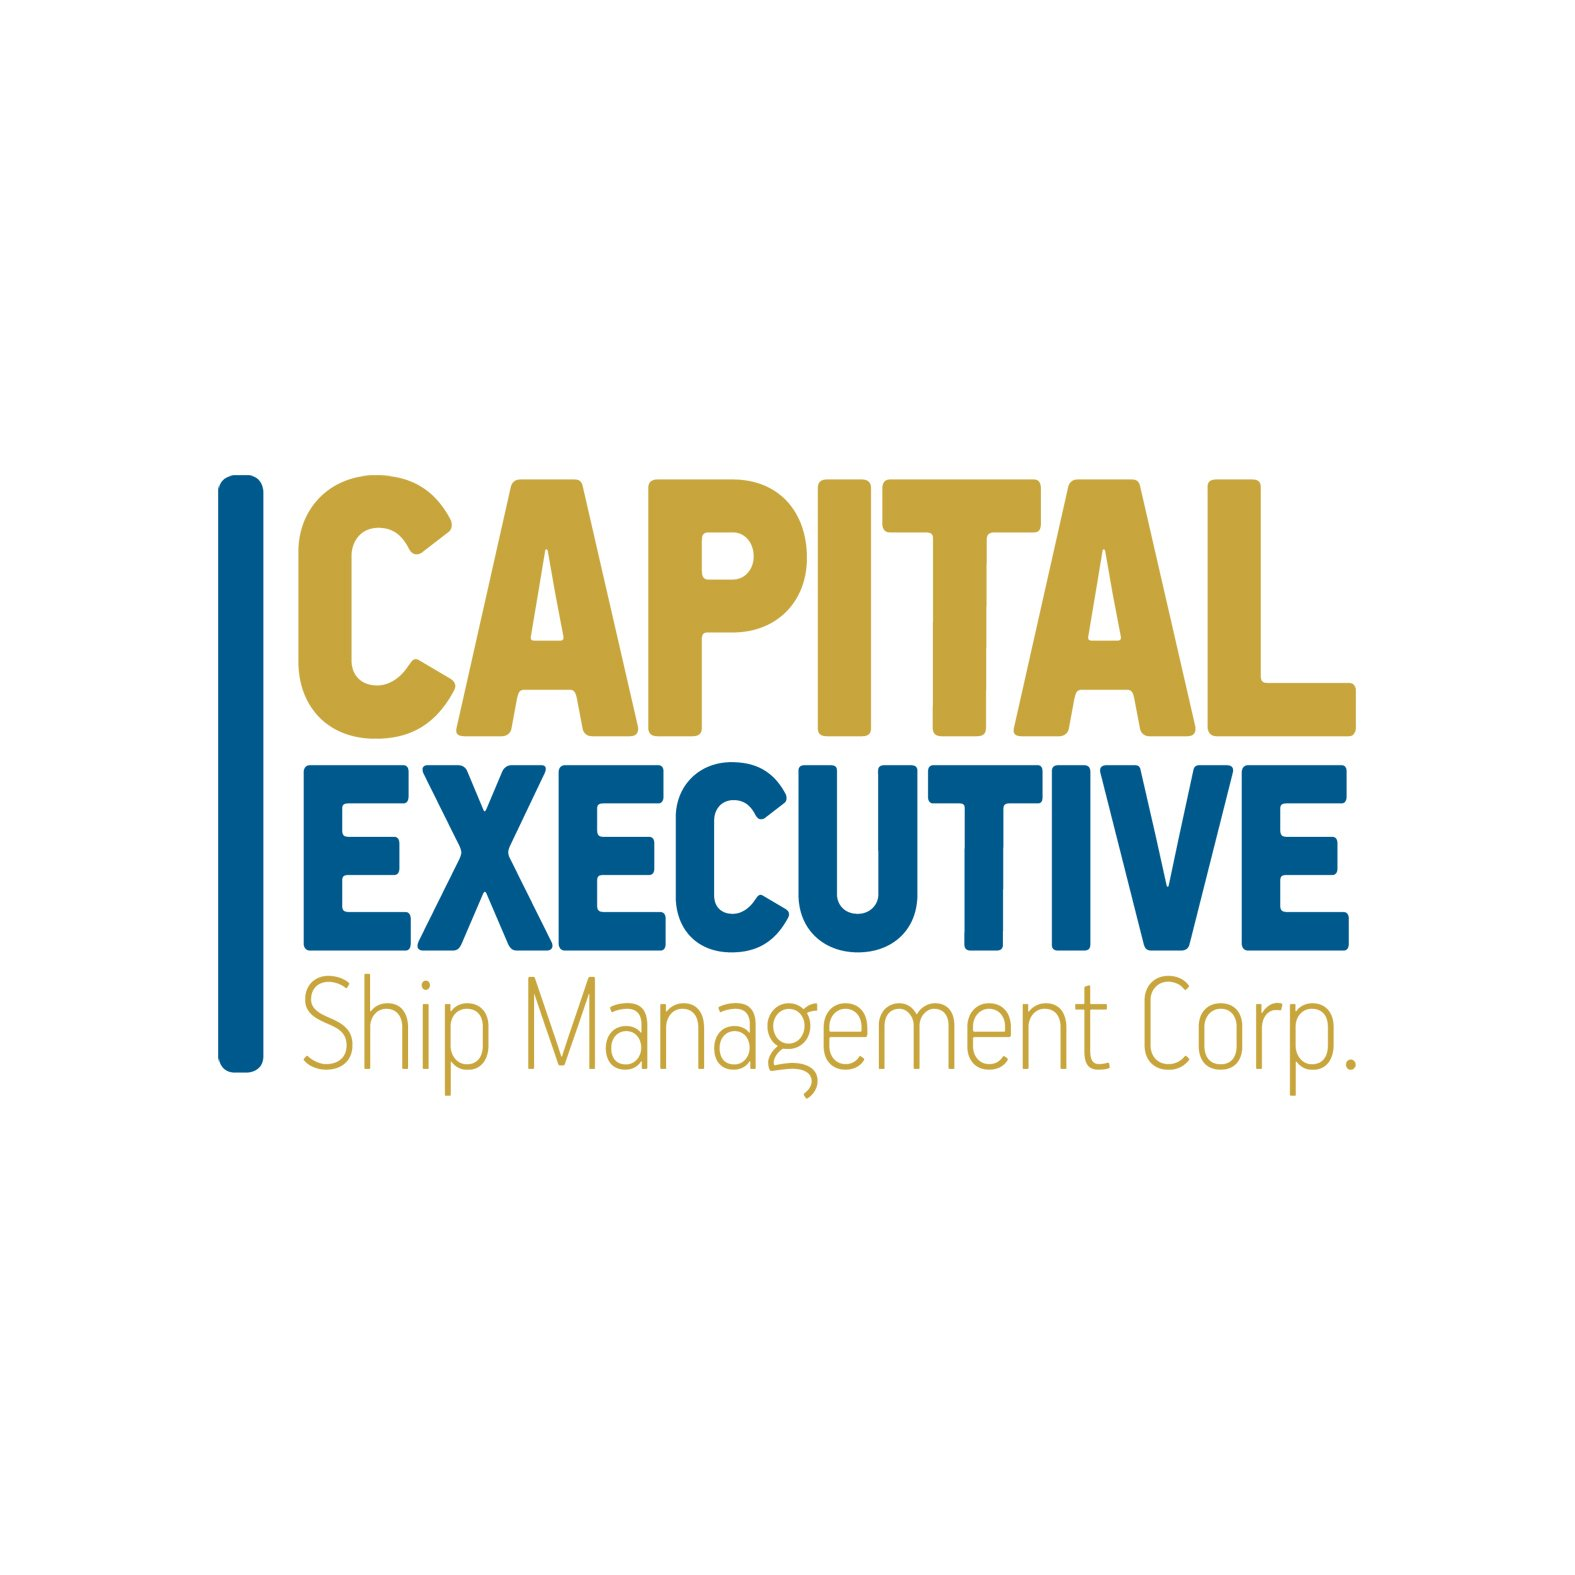 CapitalExecutive